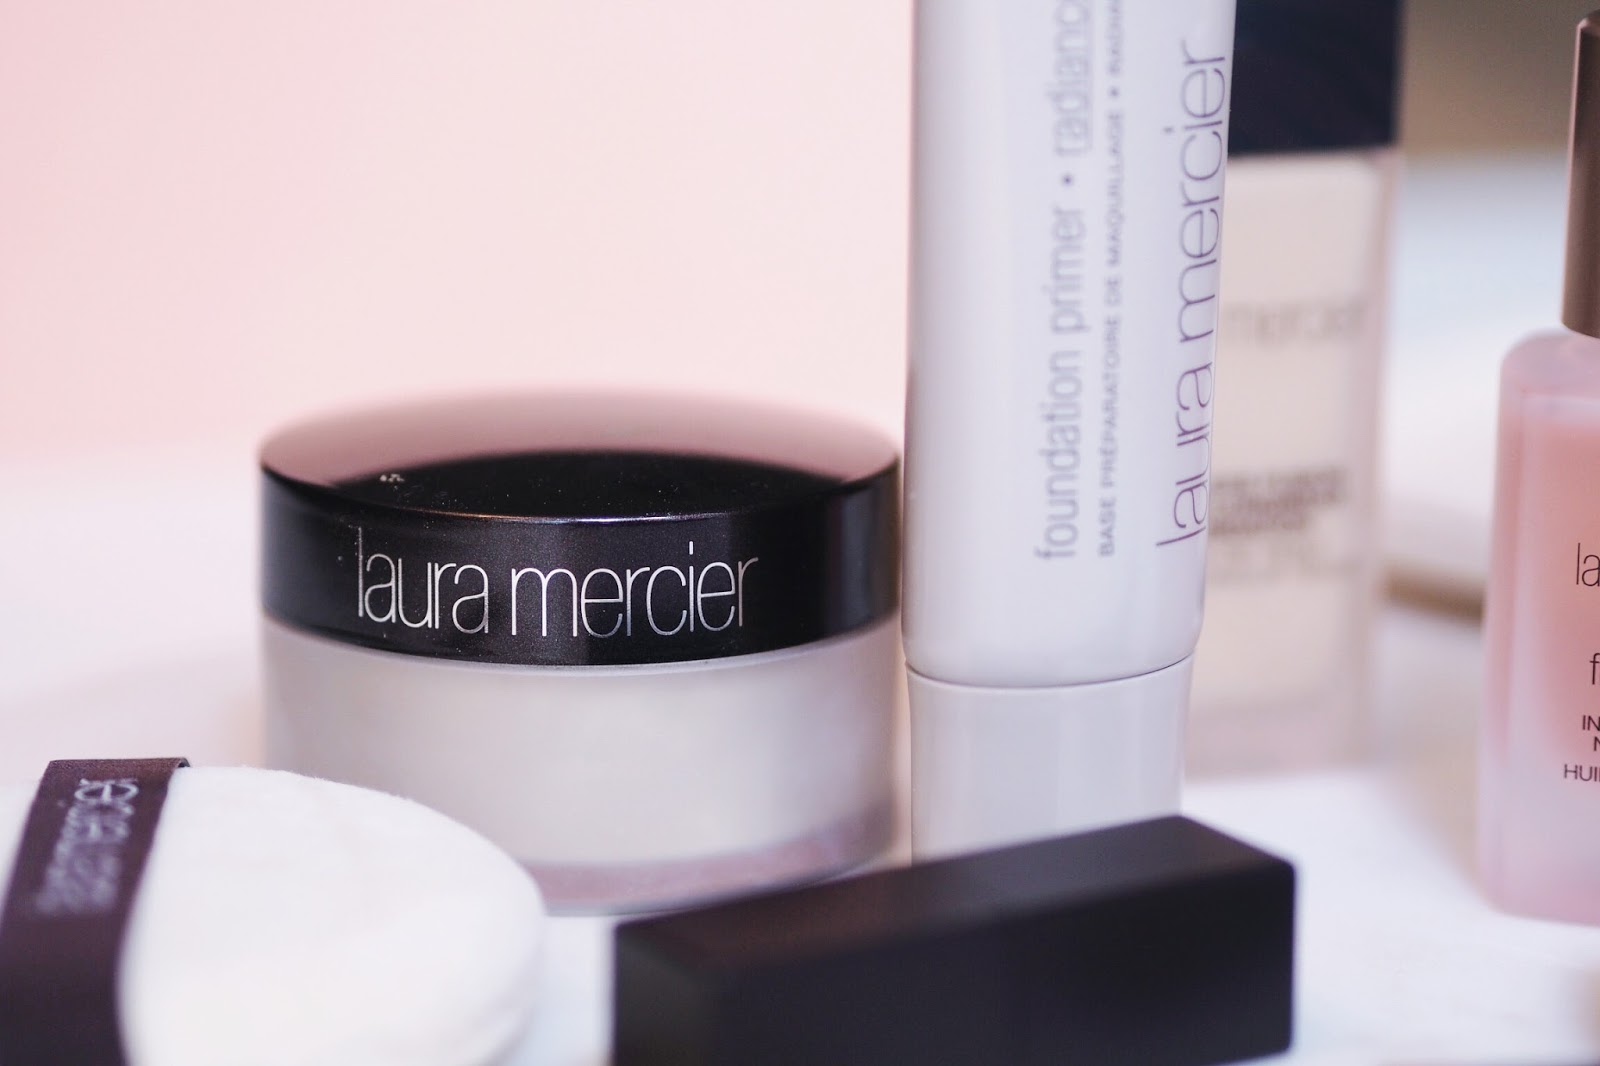 Laura Mercier Flawless Fusion foundation review products